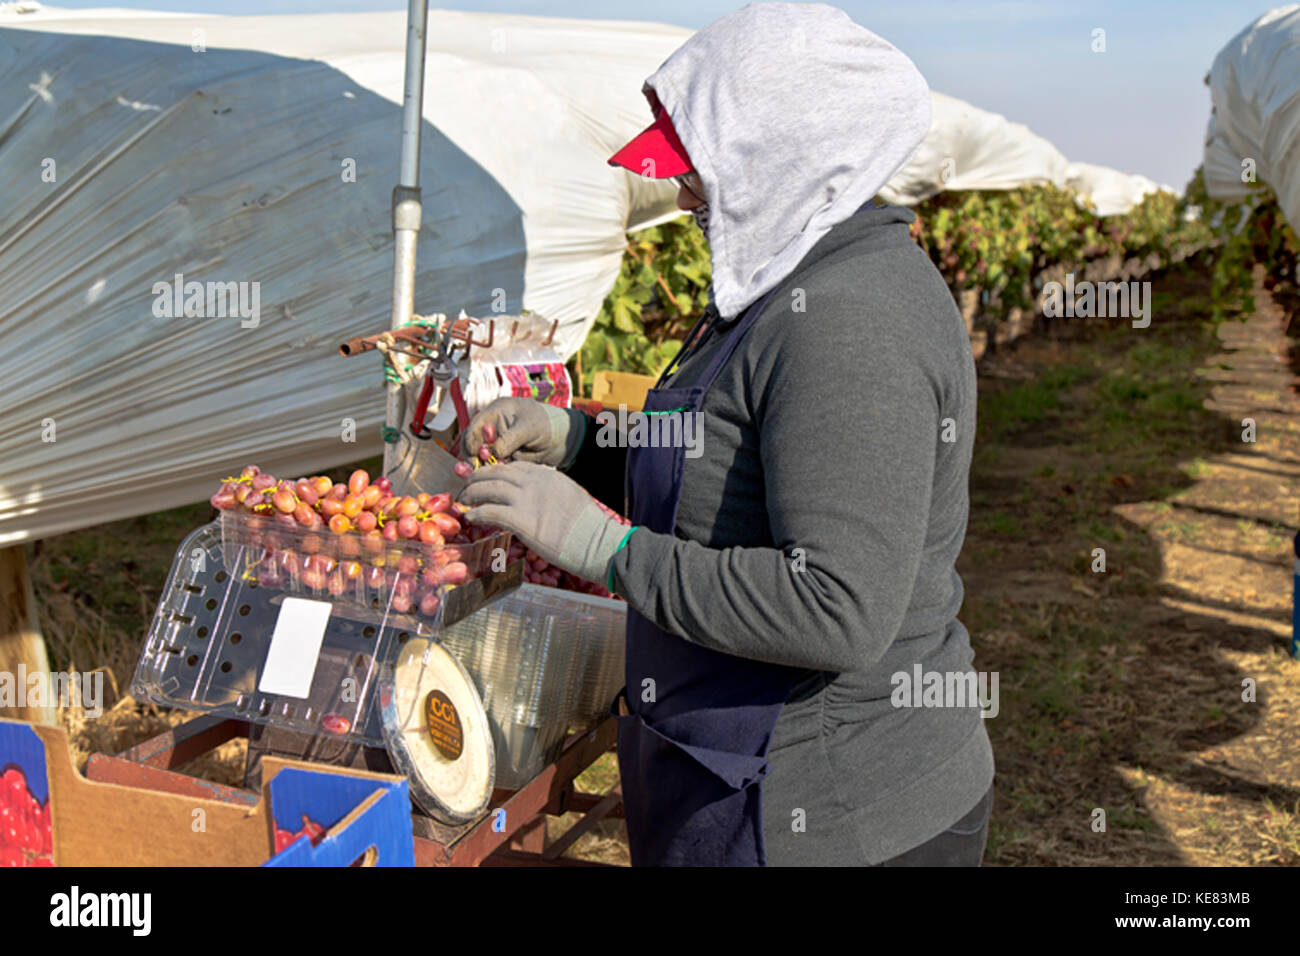 Field worker (female) weighing harvested Red Seedless Table Grapes 'Crimson' variety  'Vitis vinifera'. - Stock Image